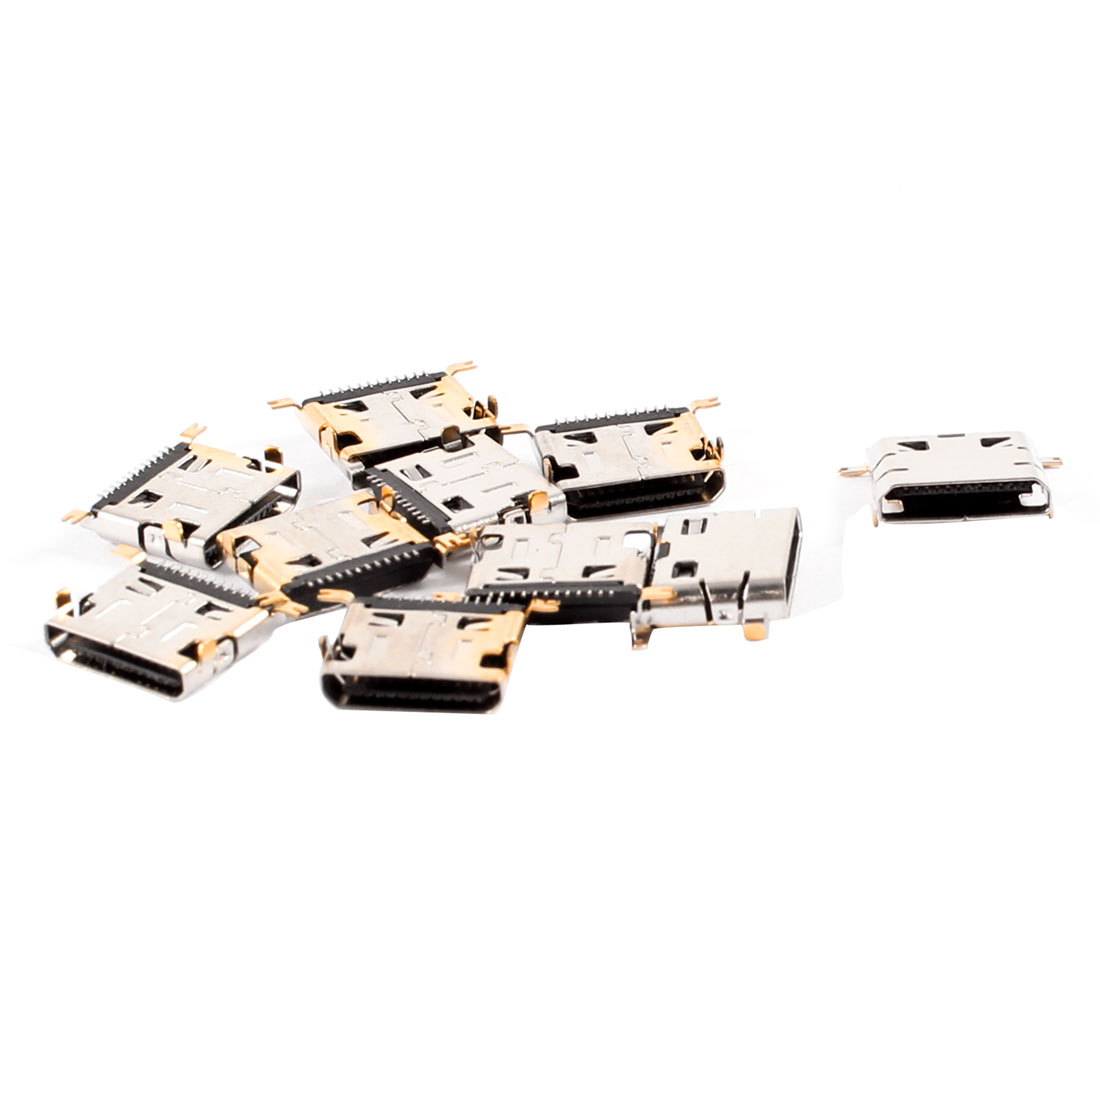 10 Pcs Type A Micro USB Female 12 Pin Jack Port Socket for LG